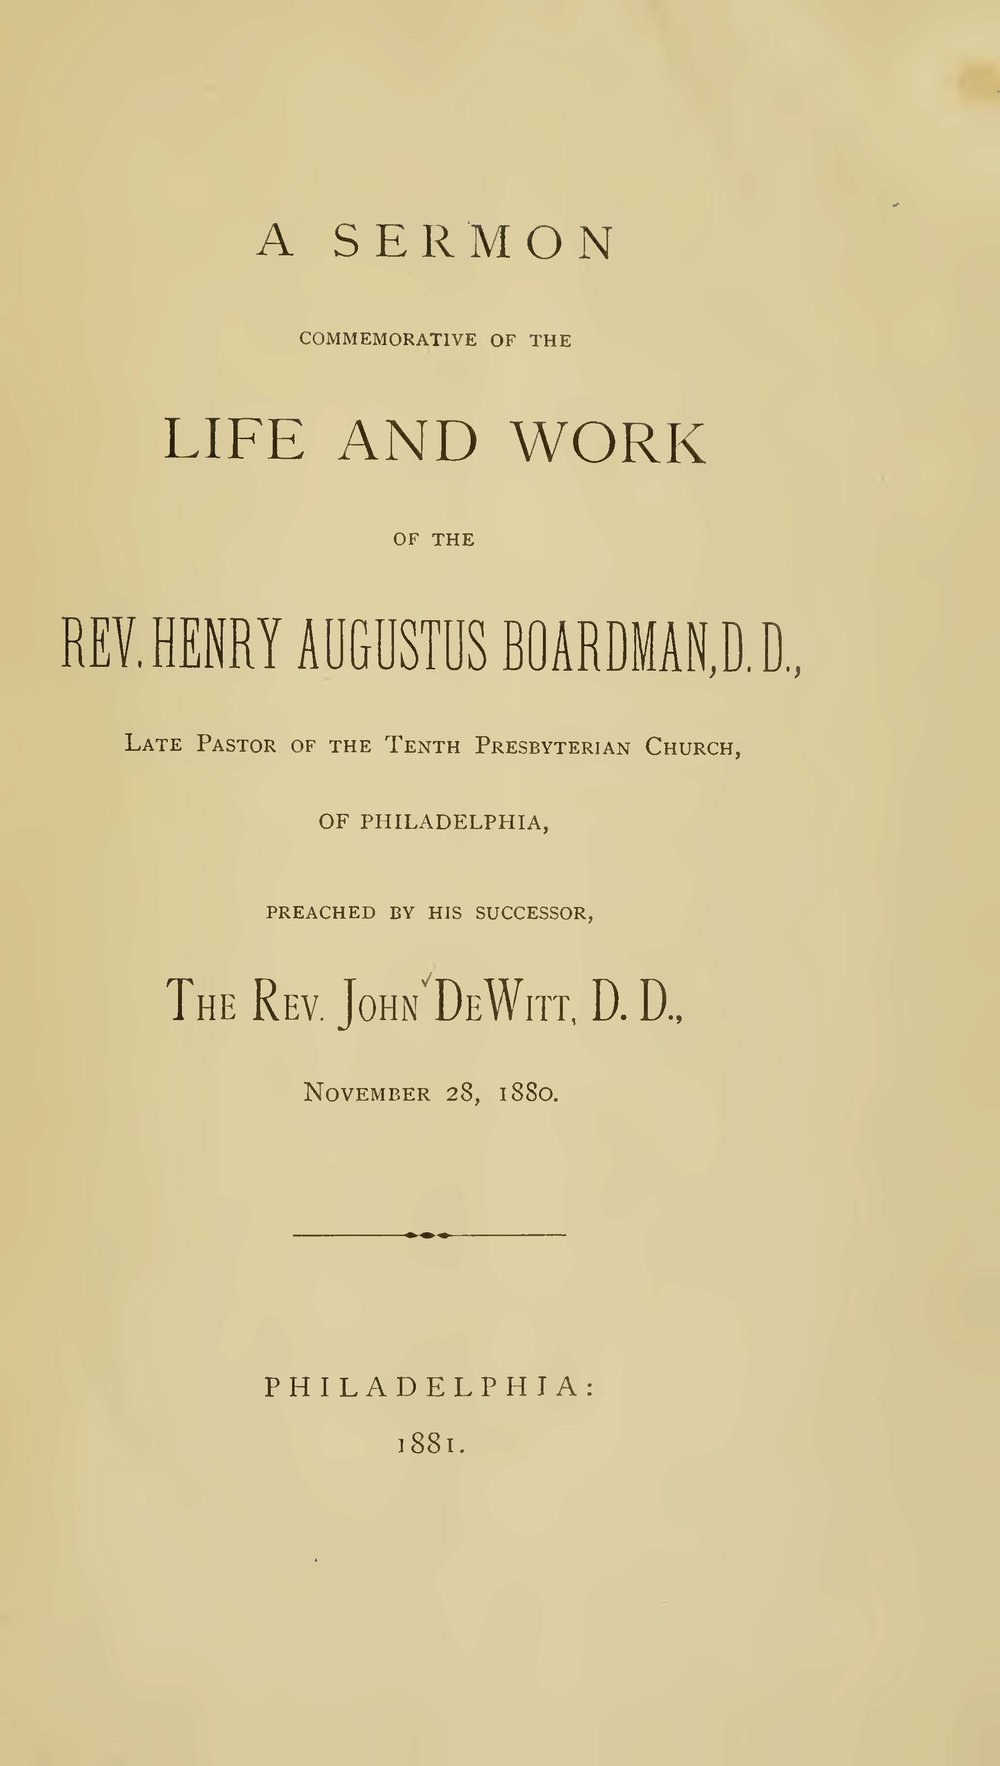 DeWitt, John, A Sermon Commemorative of the Life and Work of the Rev. Henry Augustus Boardman, D.D. Title Page.jpg